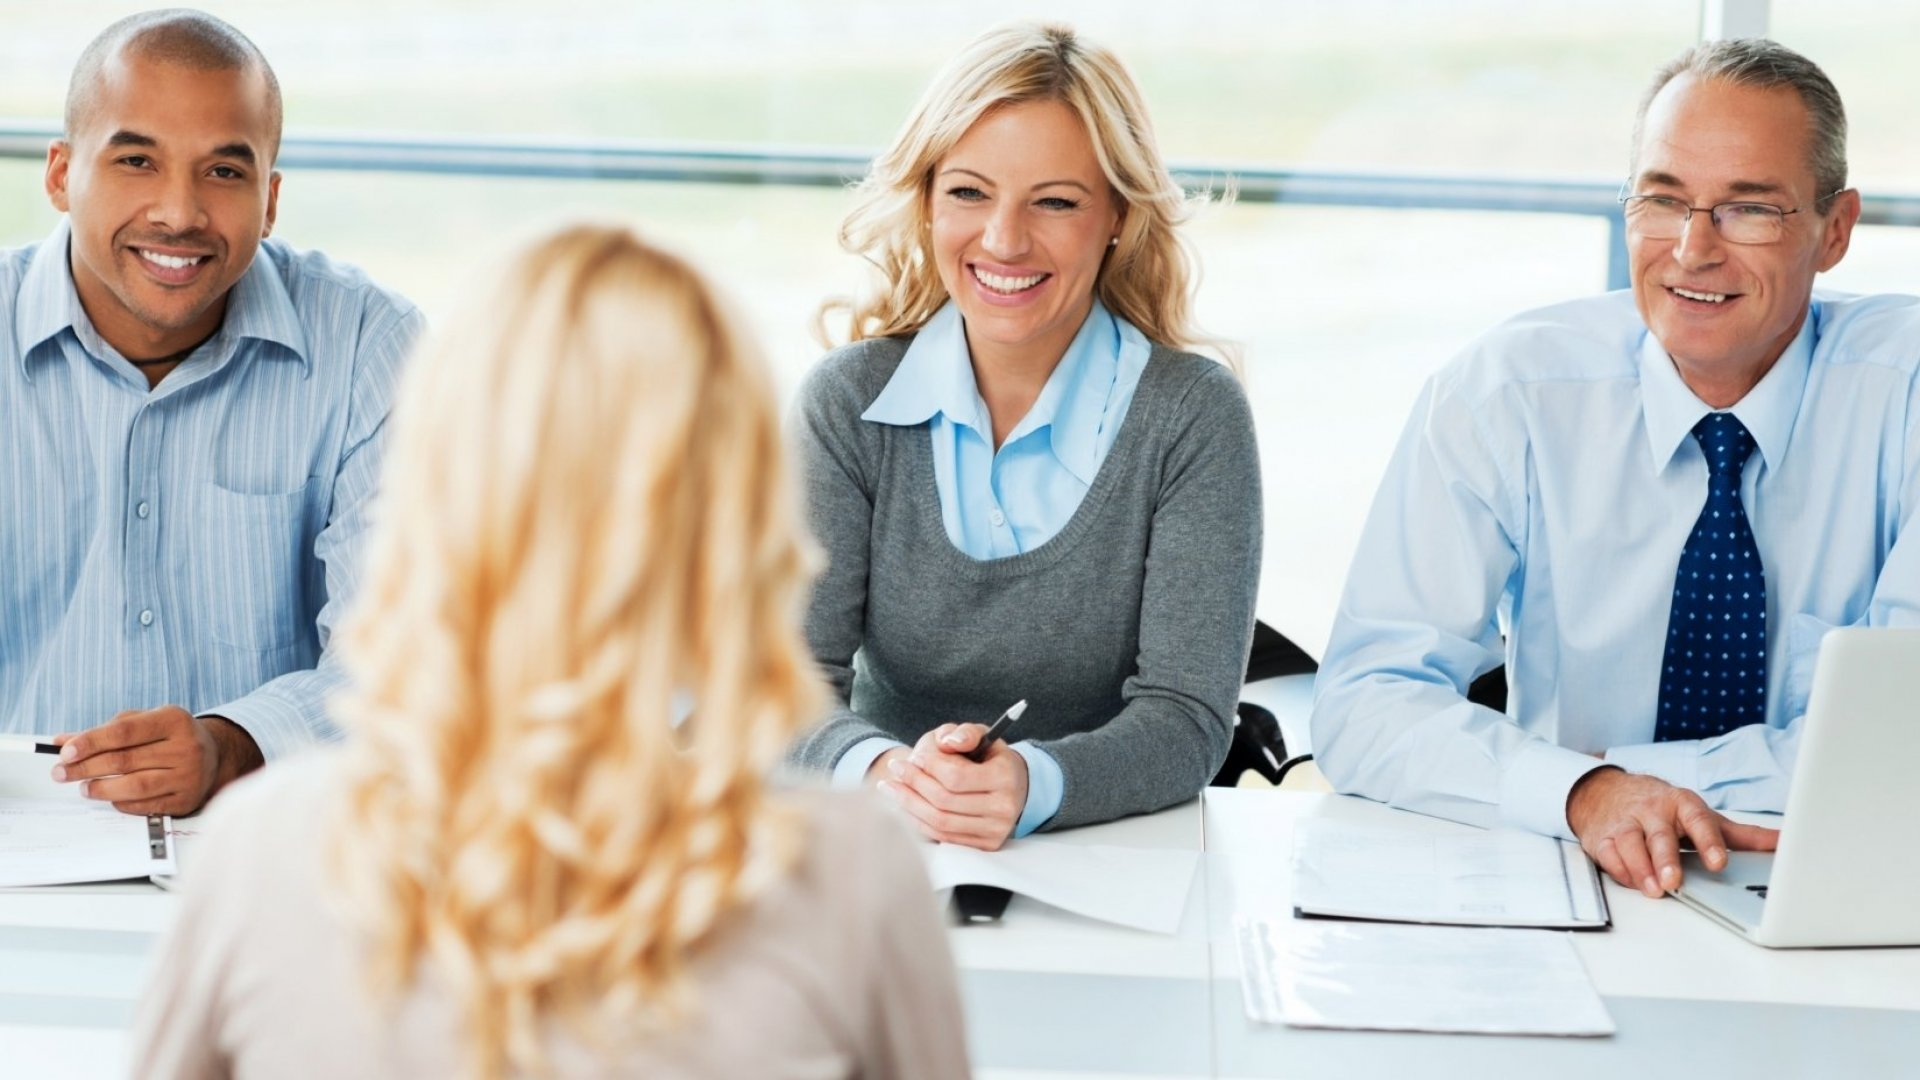 What Questions Will You Ask When Your Interviewer Asks What Questions You Have?